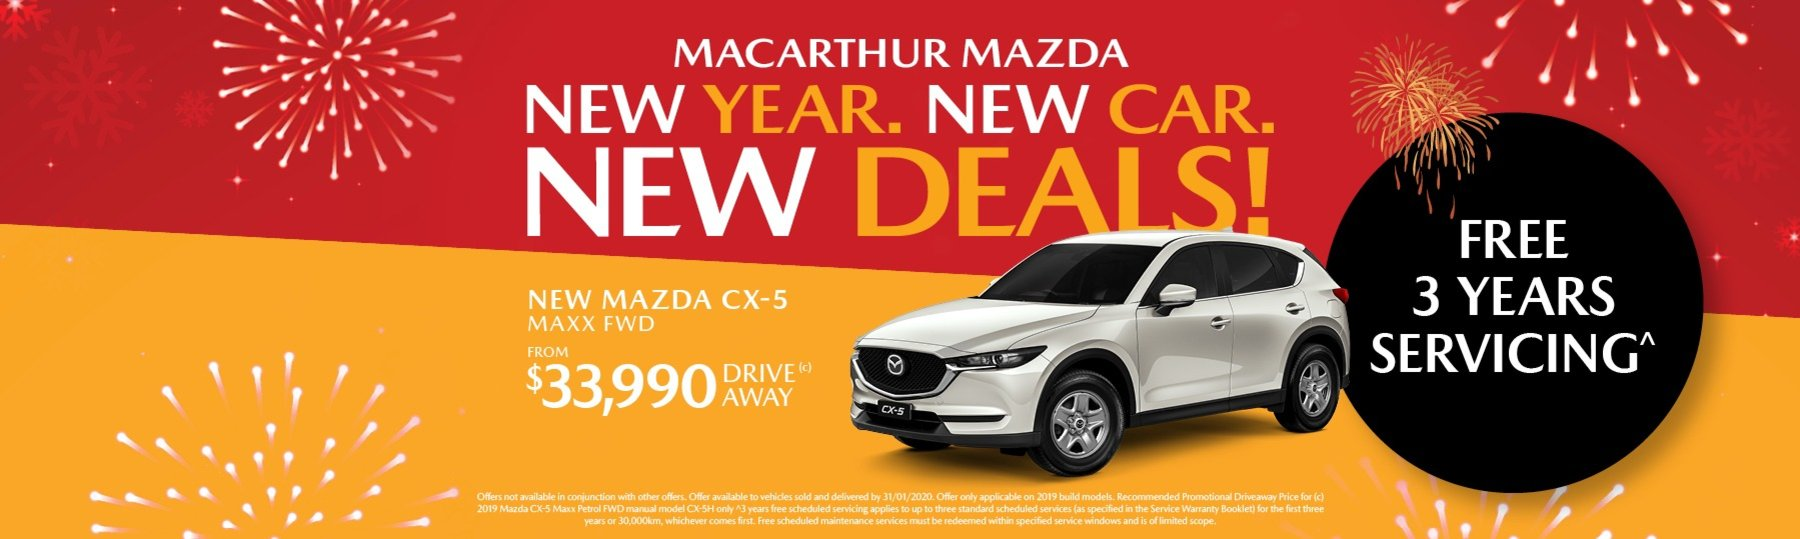 New Year. New Car. New Deals!